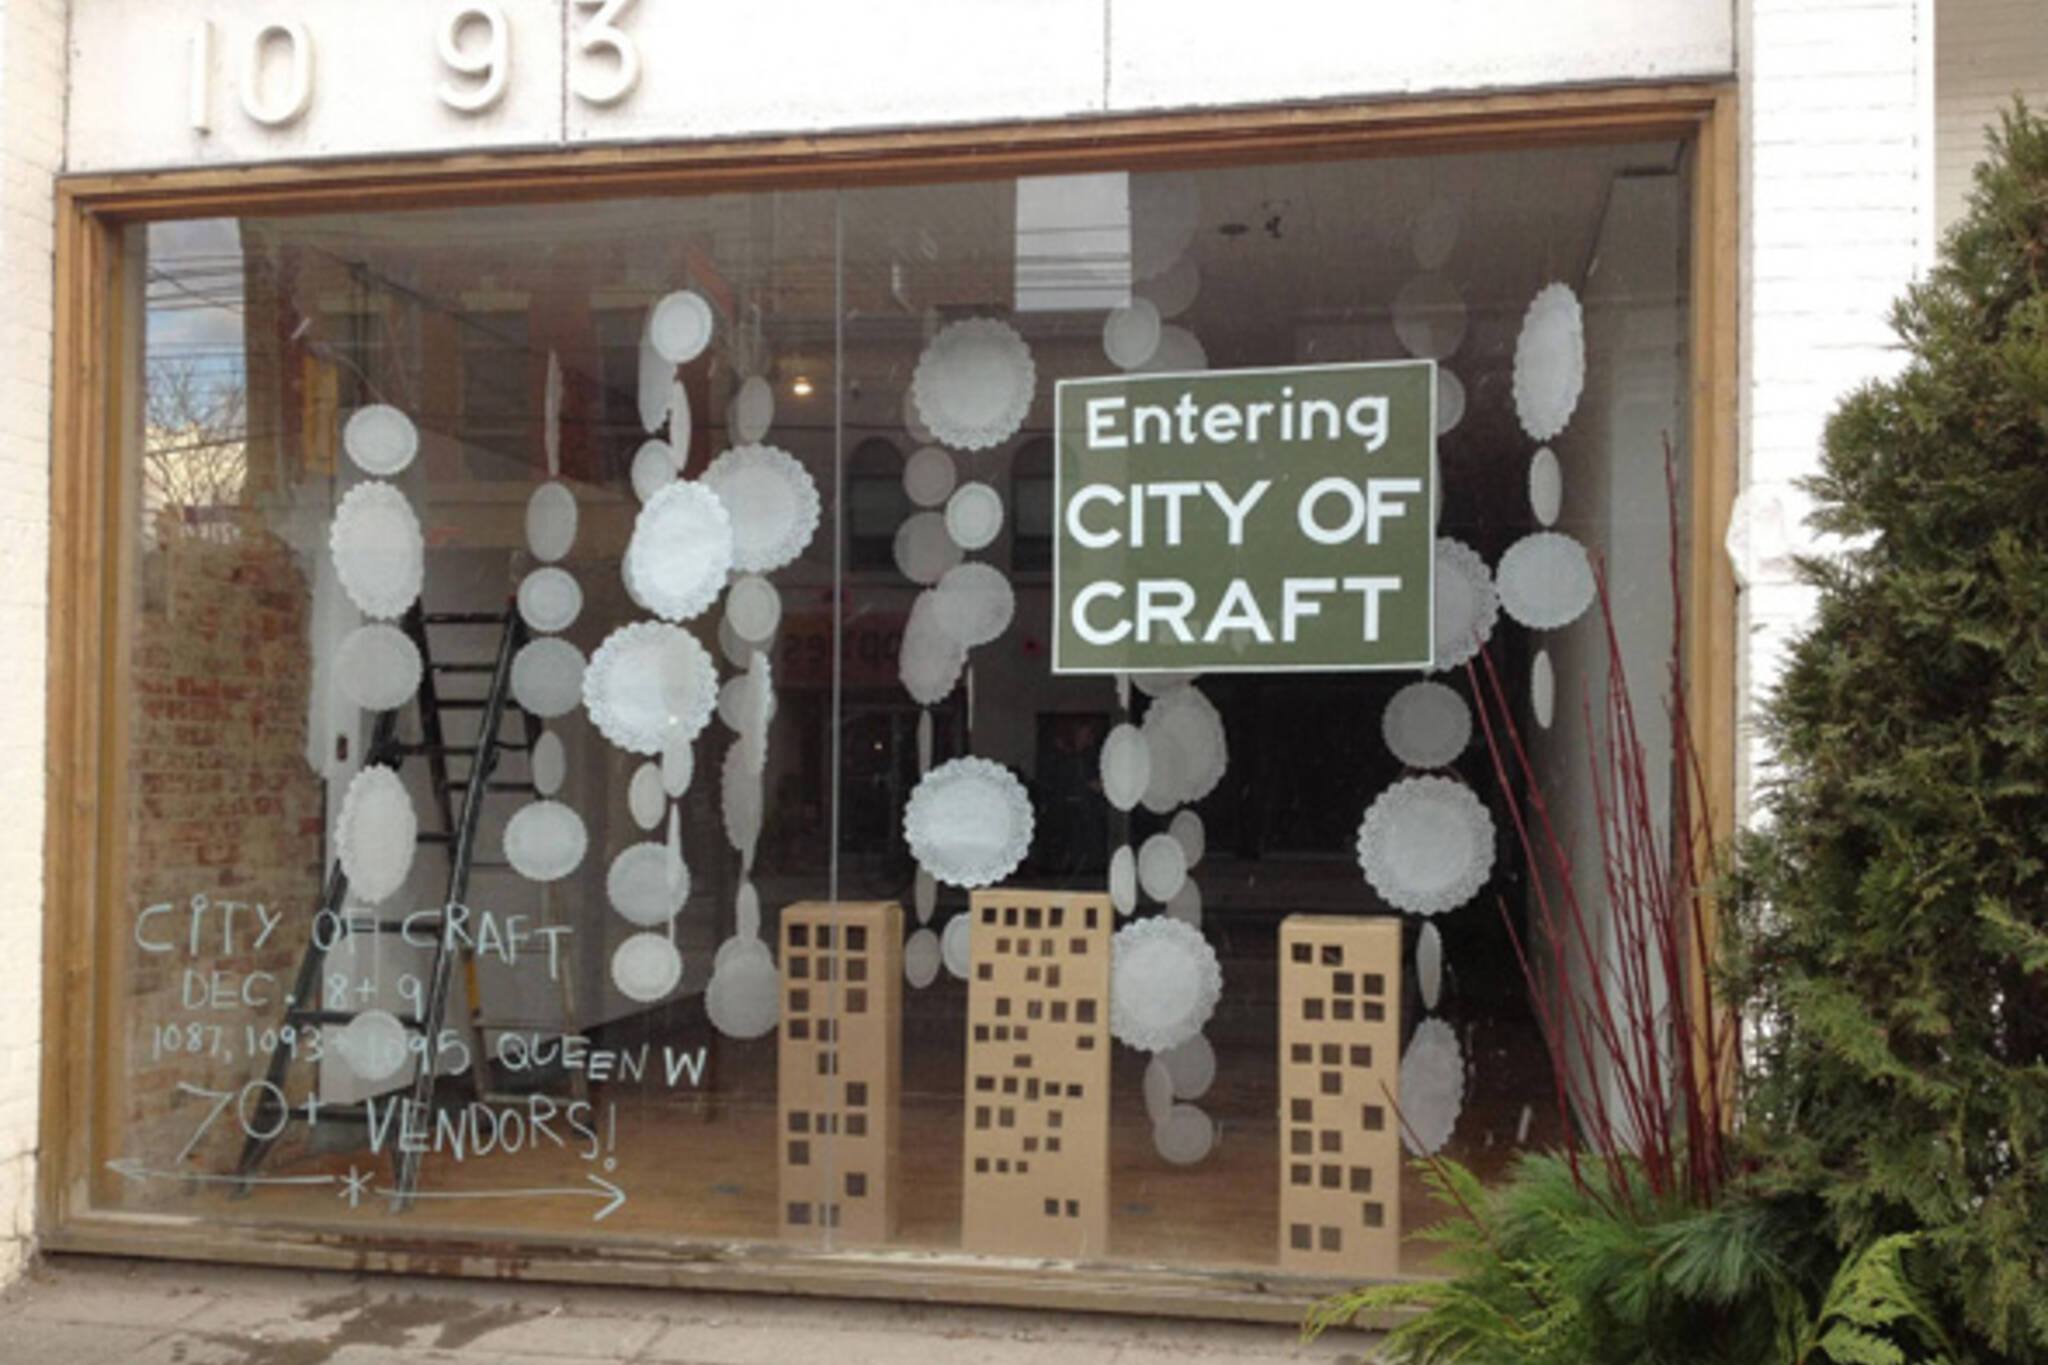 City of Craft